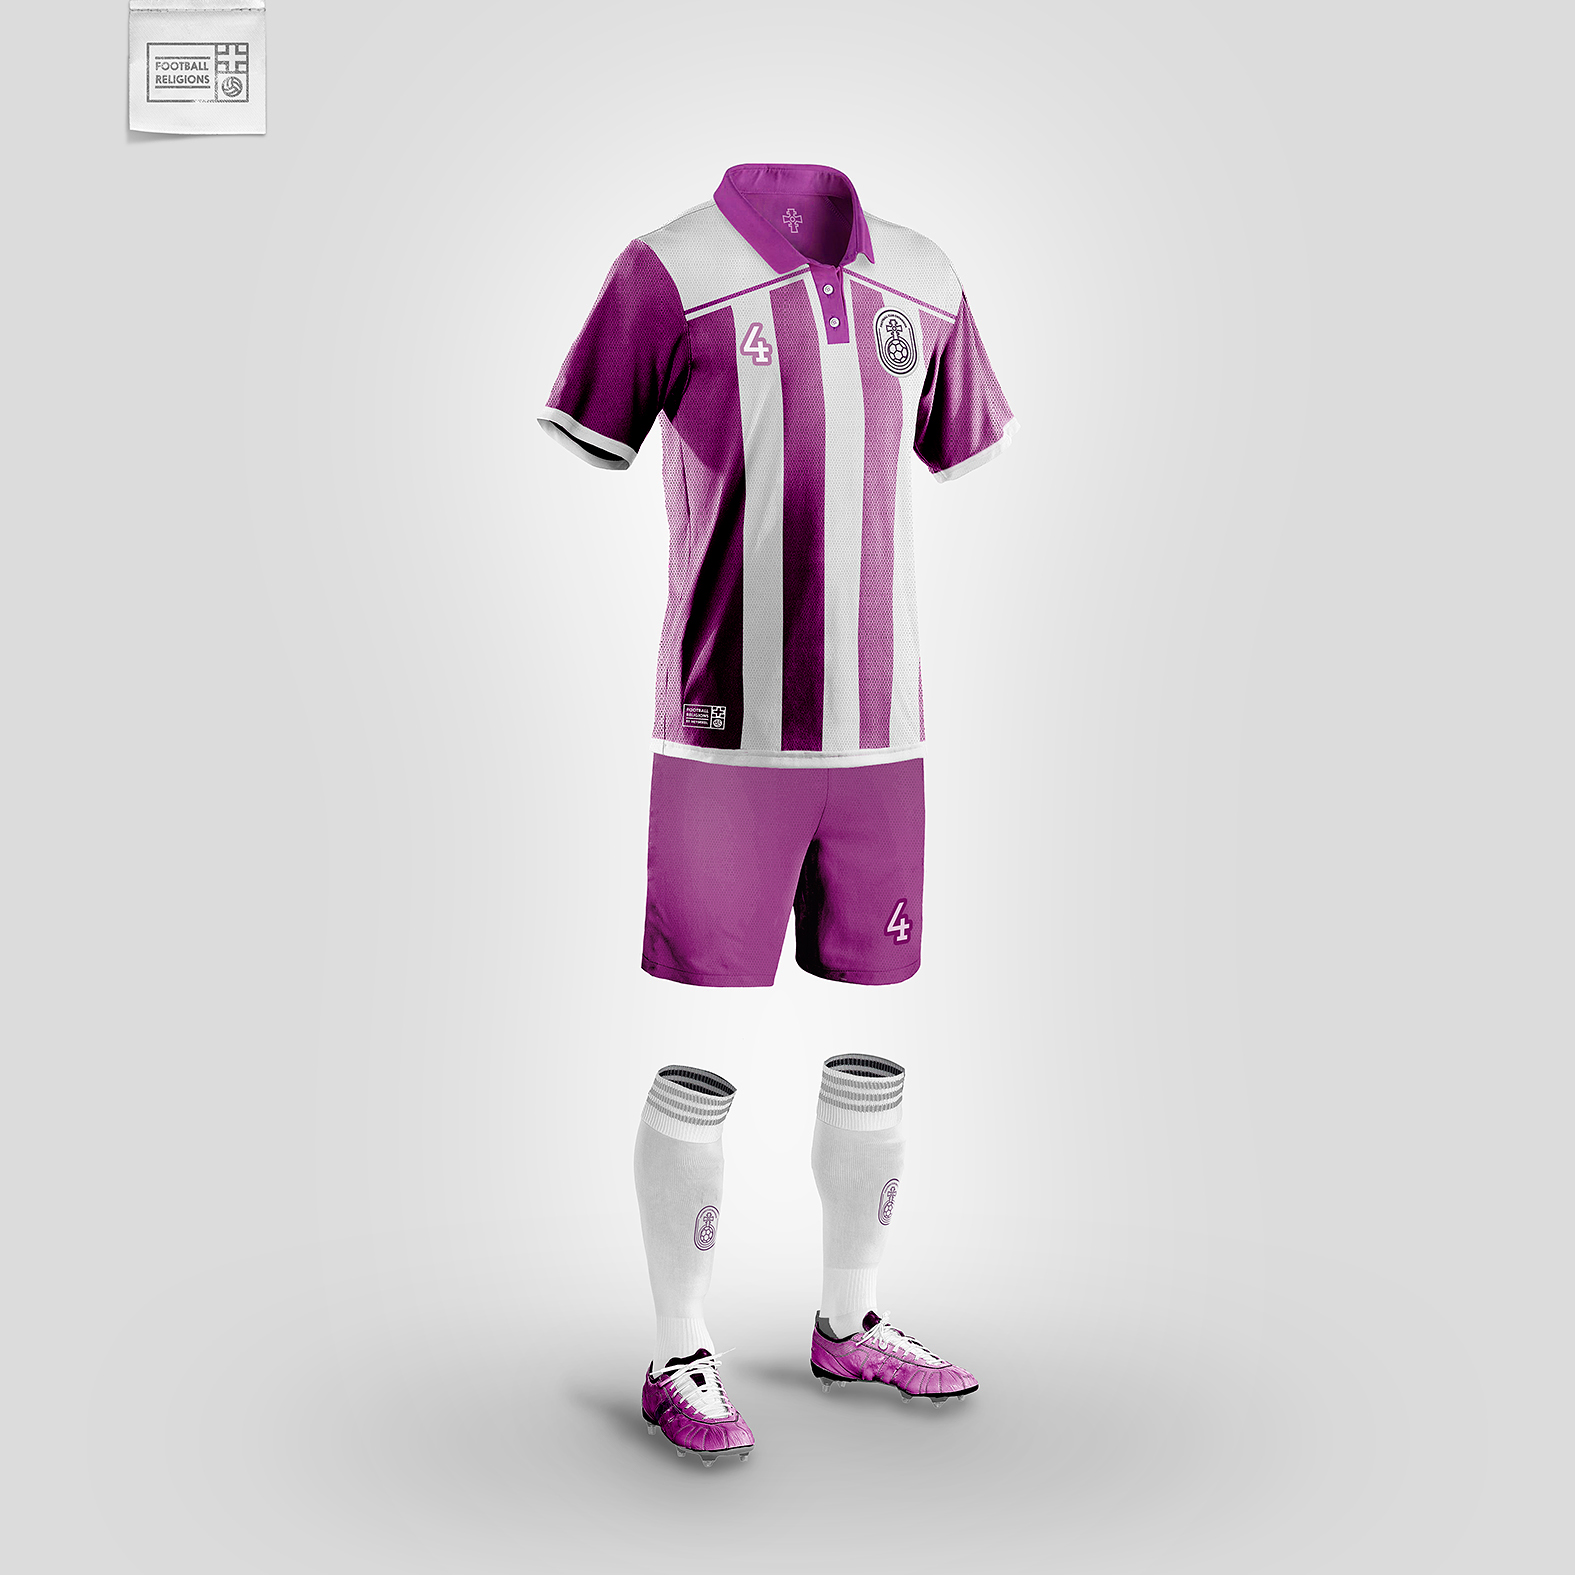 Football Religions Kits Design Project On Behance